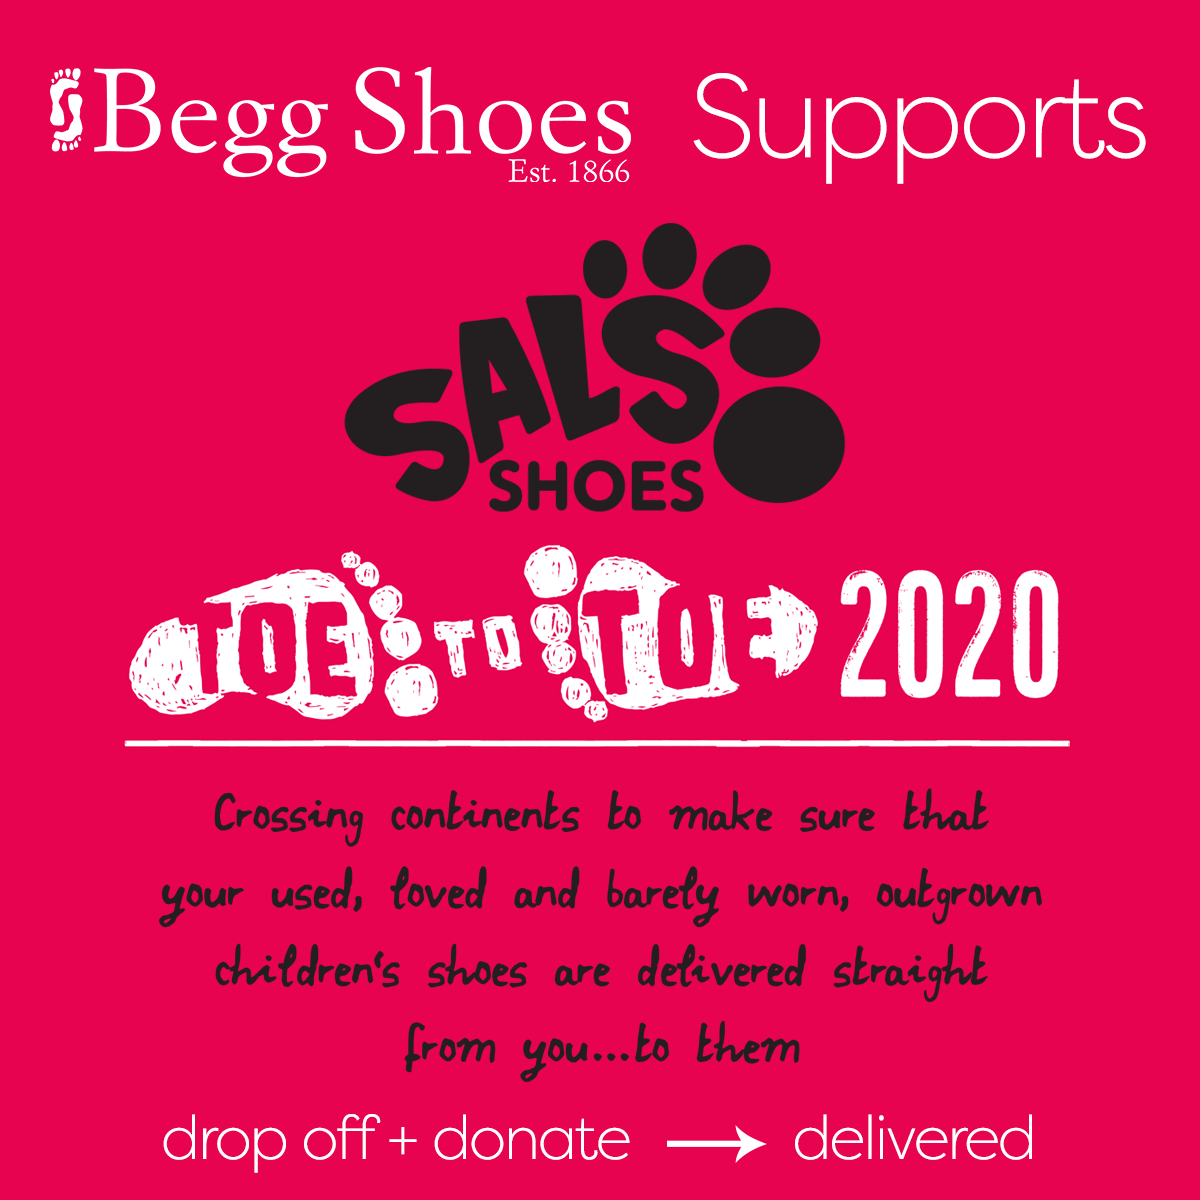 Begg Shoes Supports Sal's Shoes